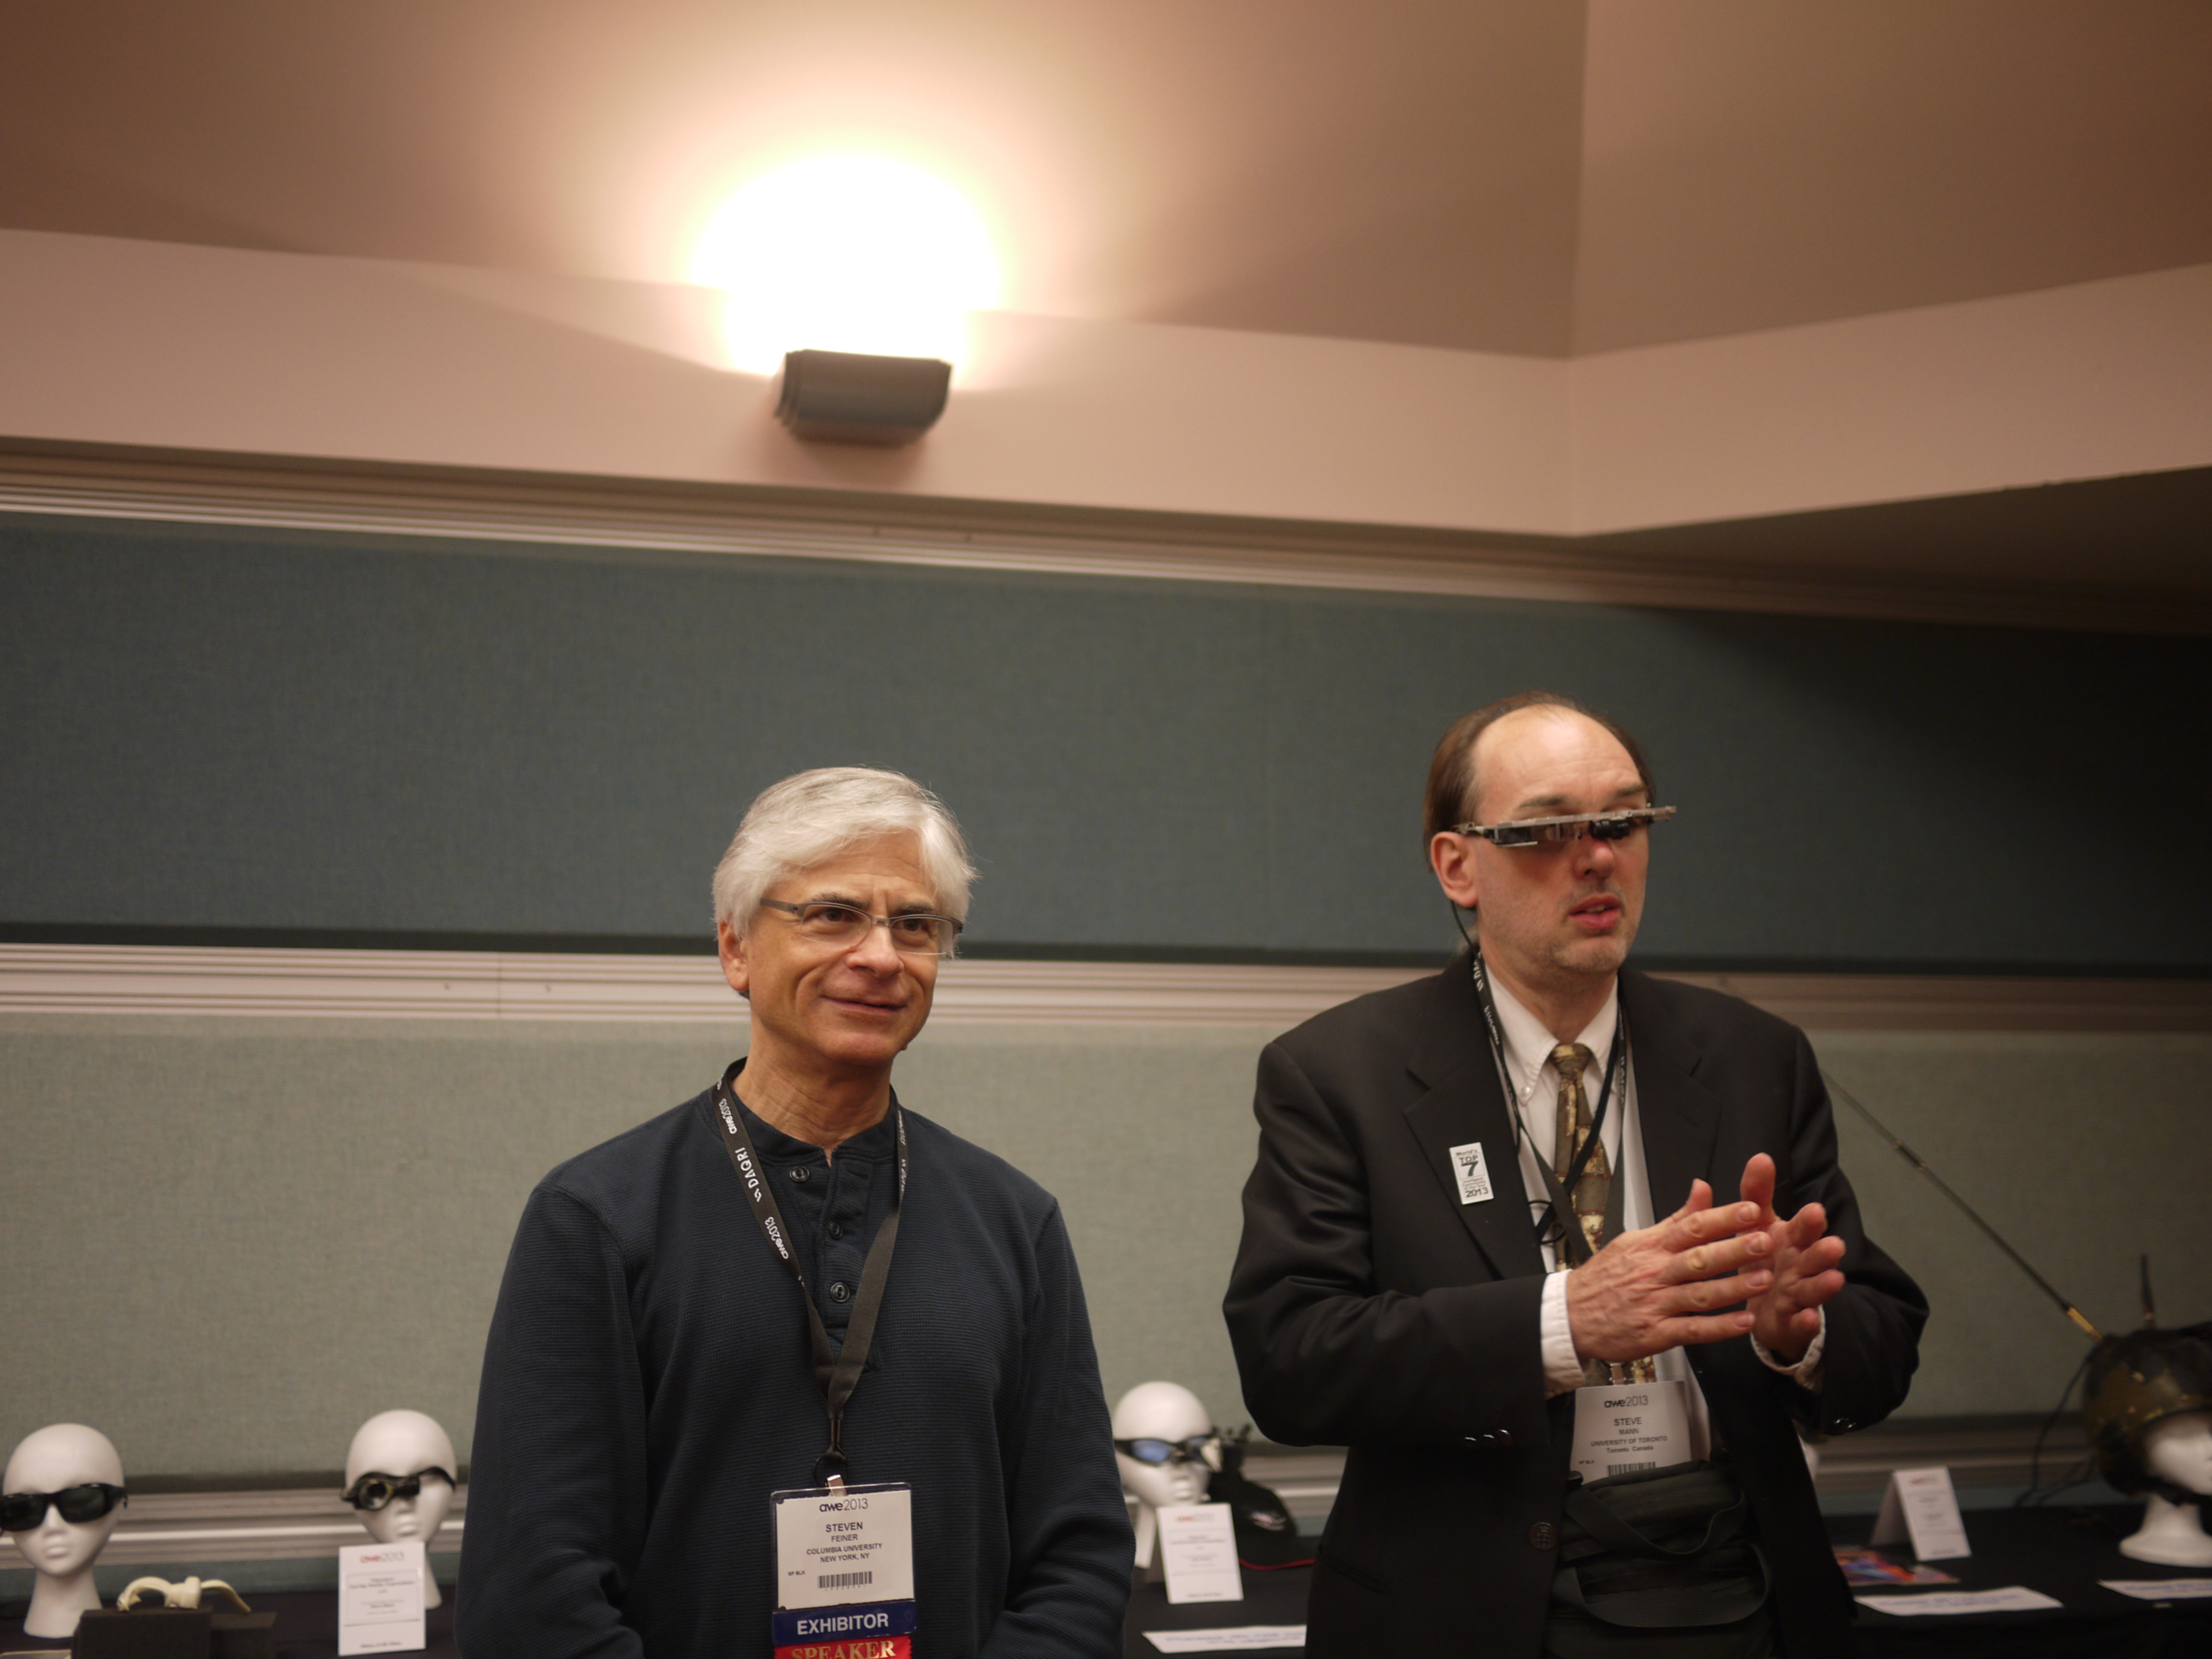 Two augmented reality pioneers: Columbia University's Steven Feiner and the University of Toronto's Steve Mann